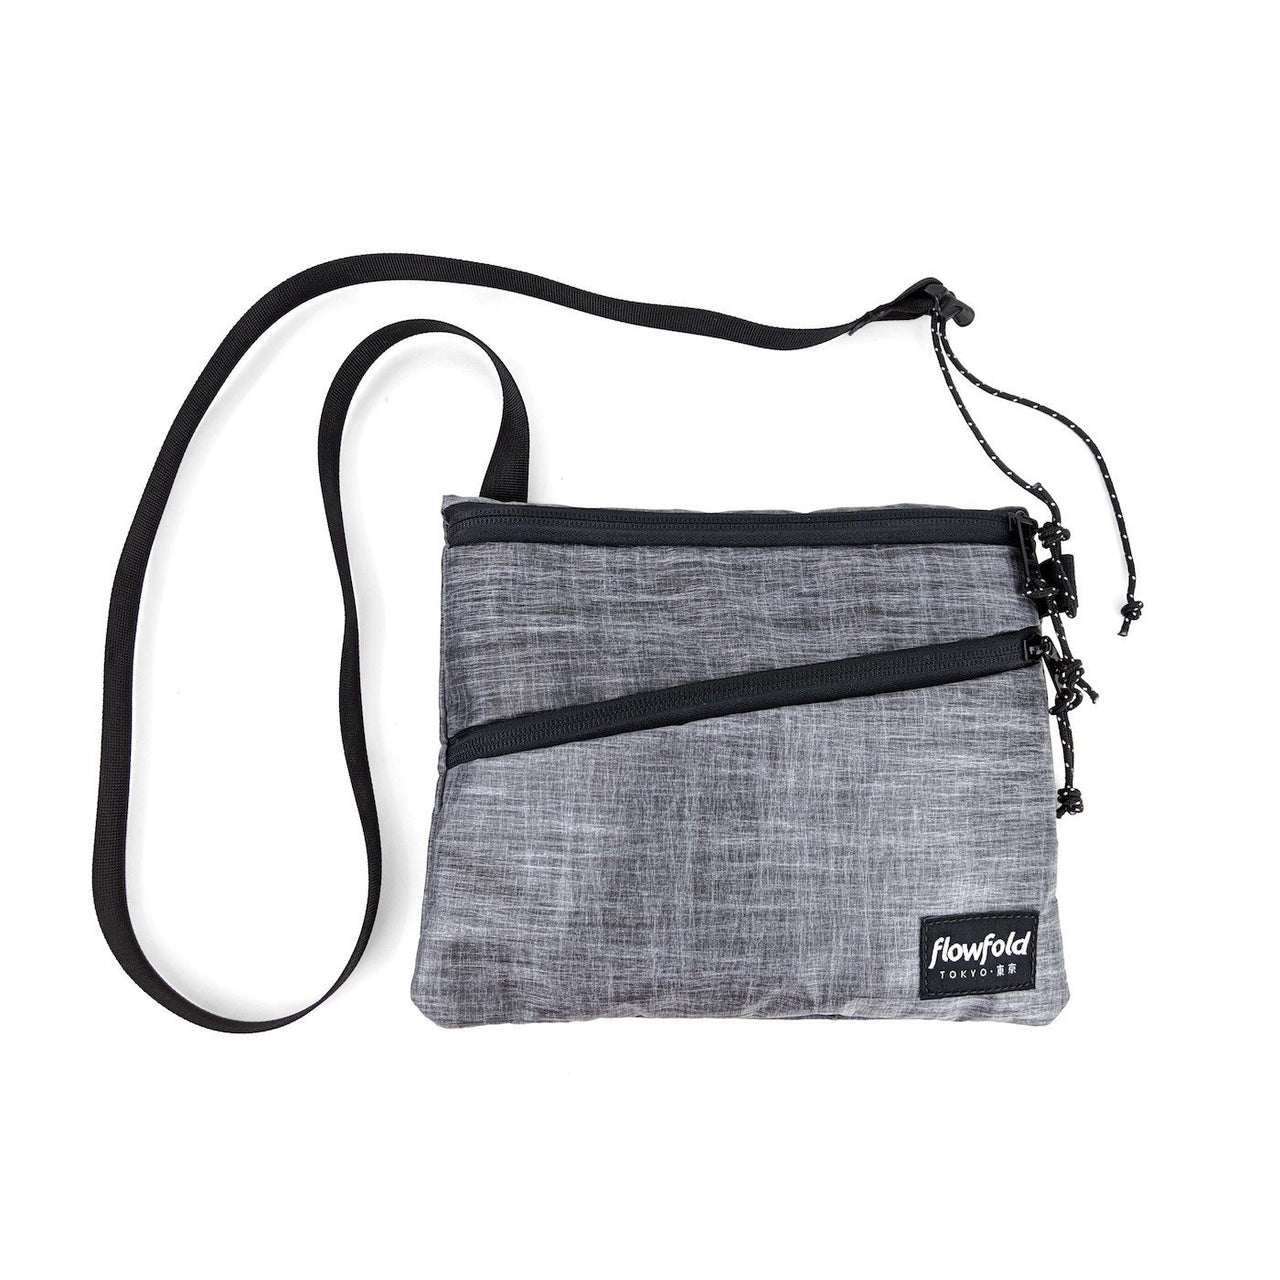 Sacoche - Medium Crossbody Bag - Heather Grey